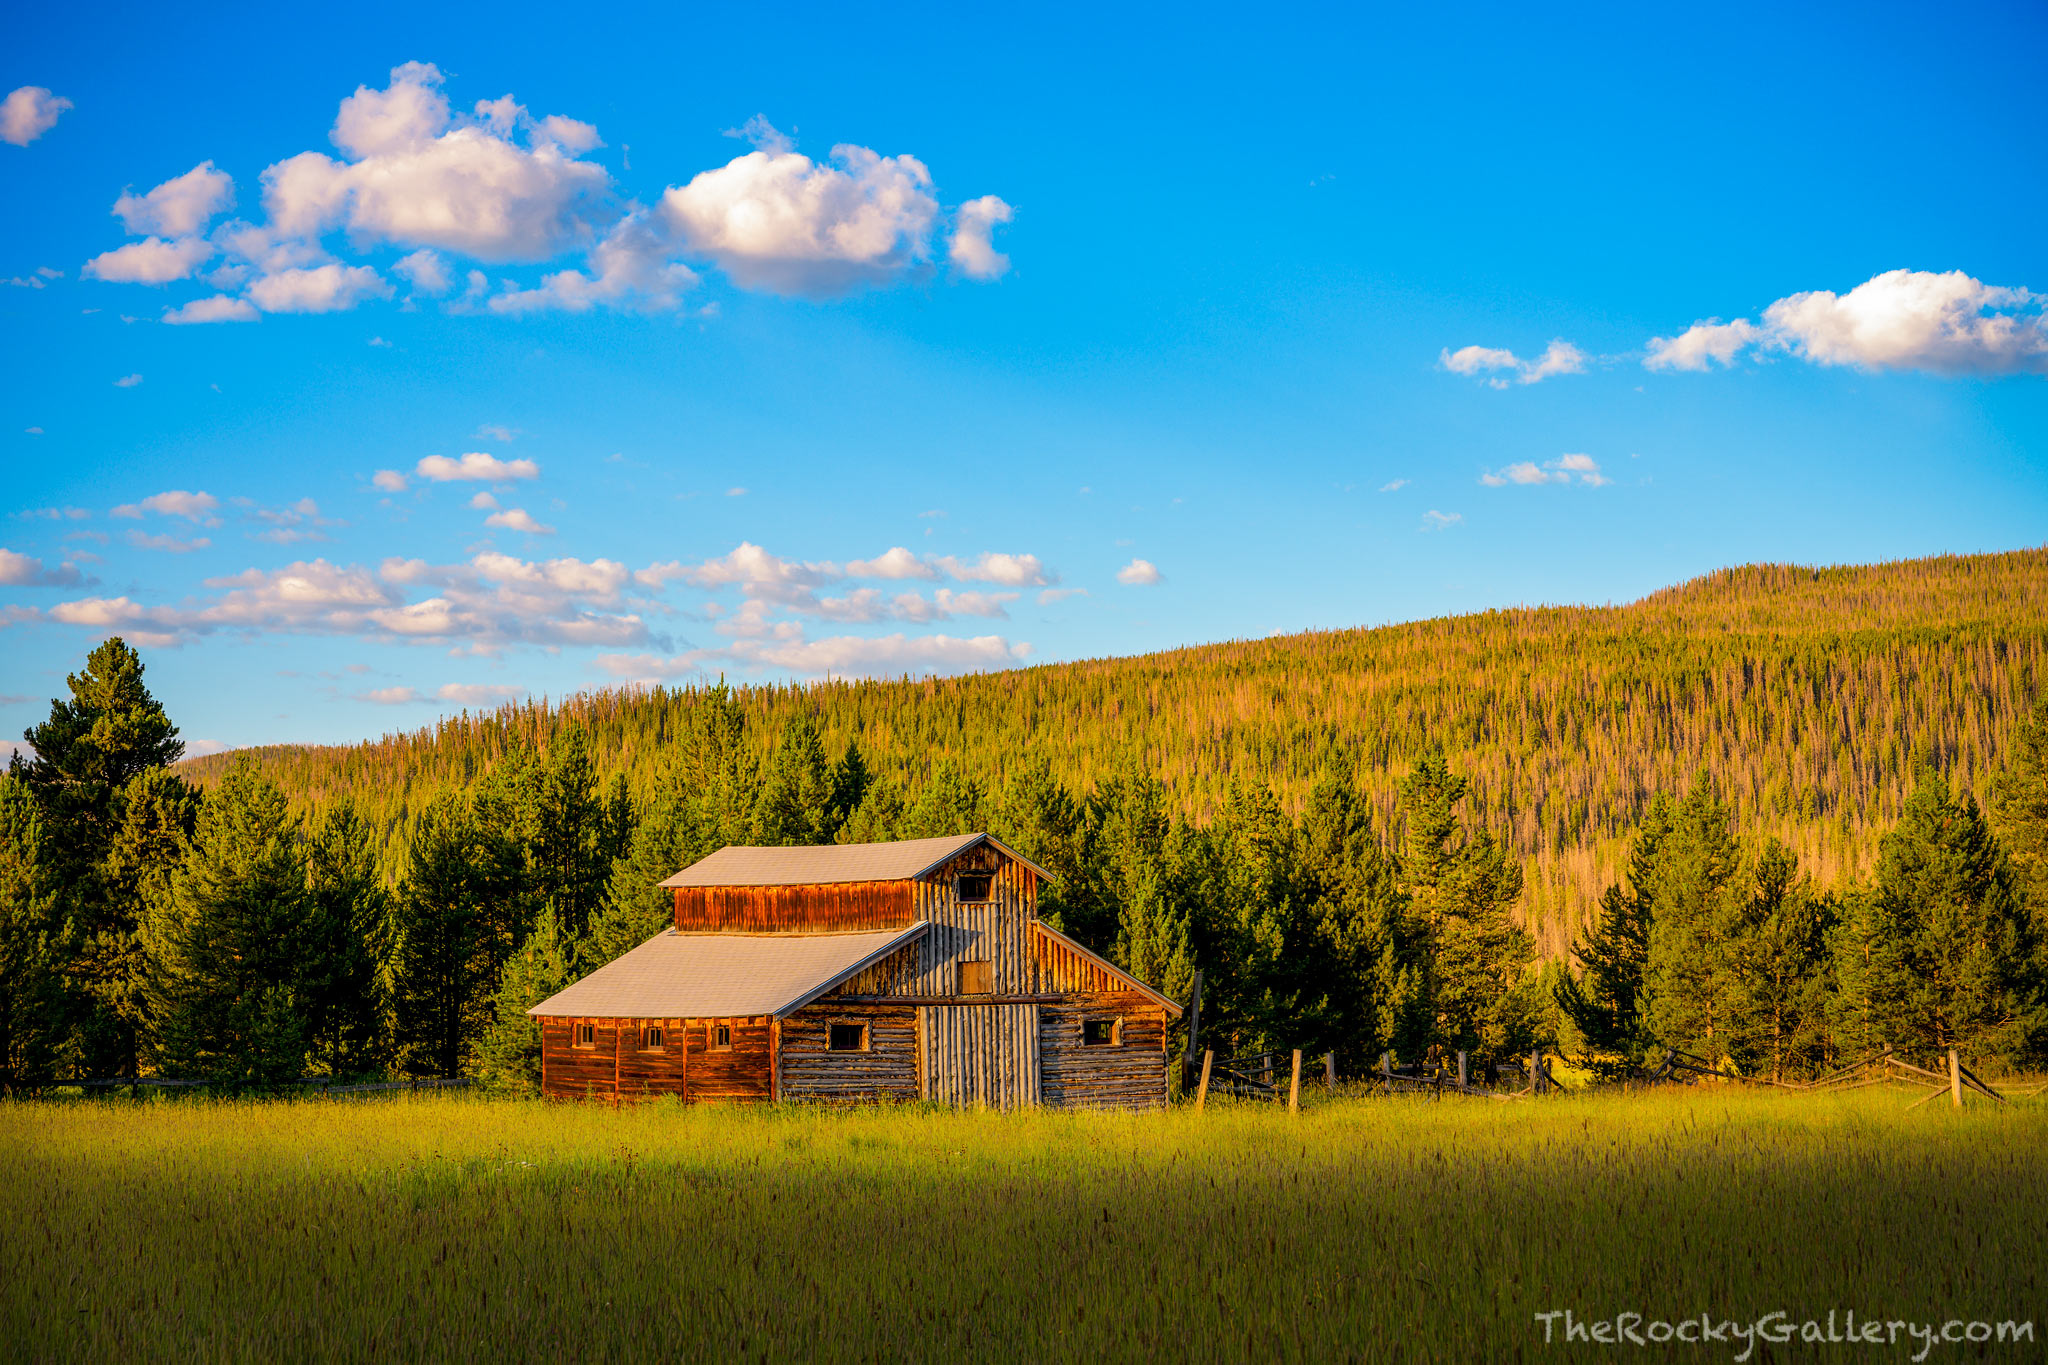 Little Buckaroo Barn,Trail River Ridge,Kawuneeche Valley,Grand Lake,Trail Ridge Road,Colorado River,RMNP,Colorado,Rocky Mountain National Park,Landscape,Photography,August,Summer,hand of man, barn,wes, photo